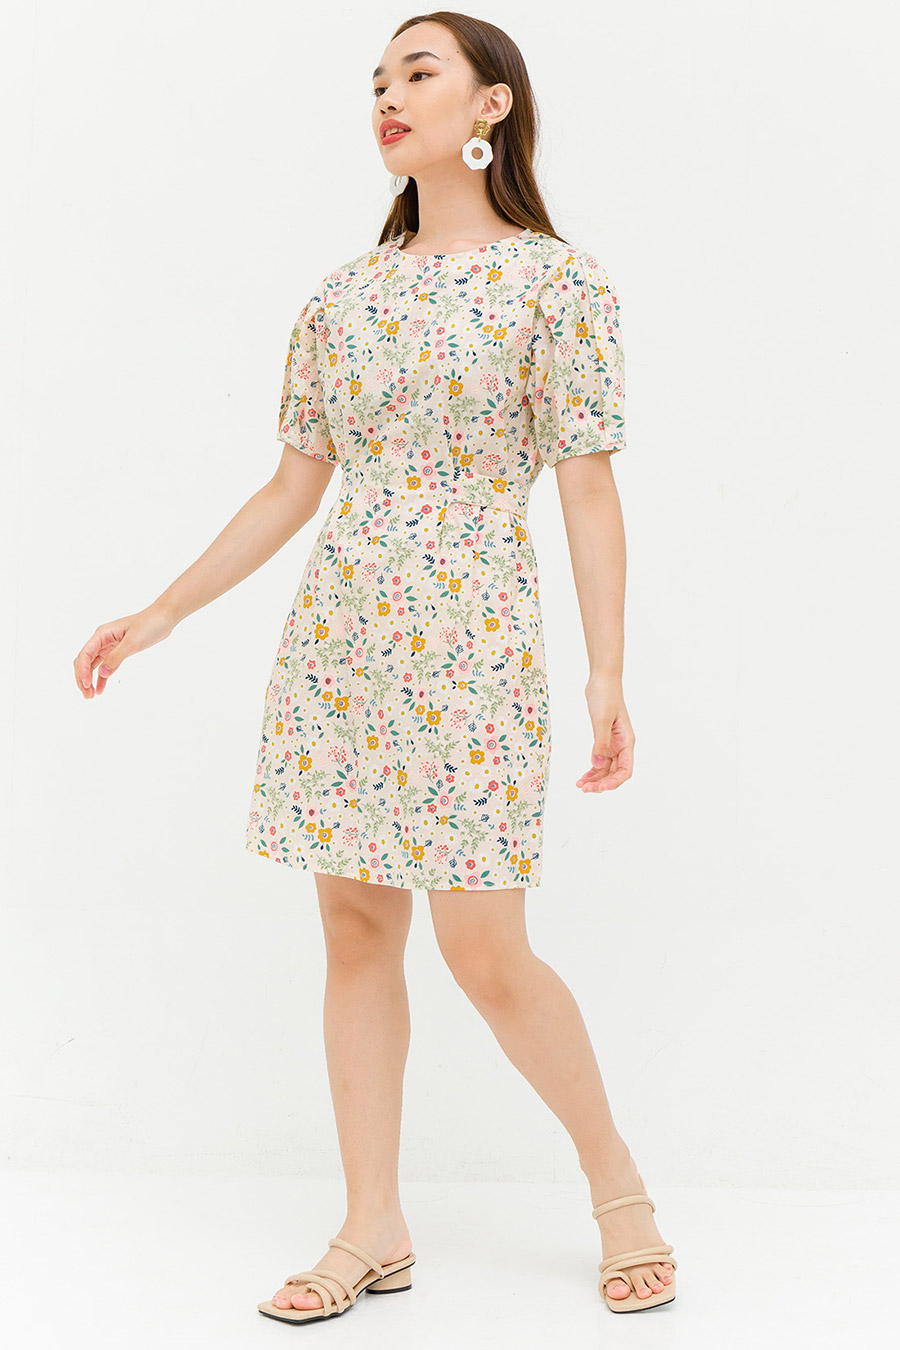 WILLETTE DRESS - CREME FLEUR